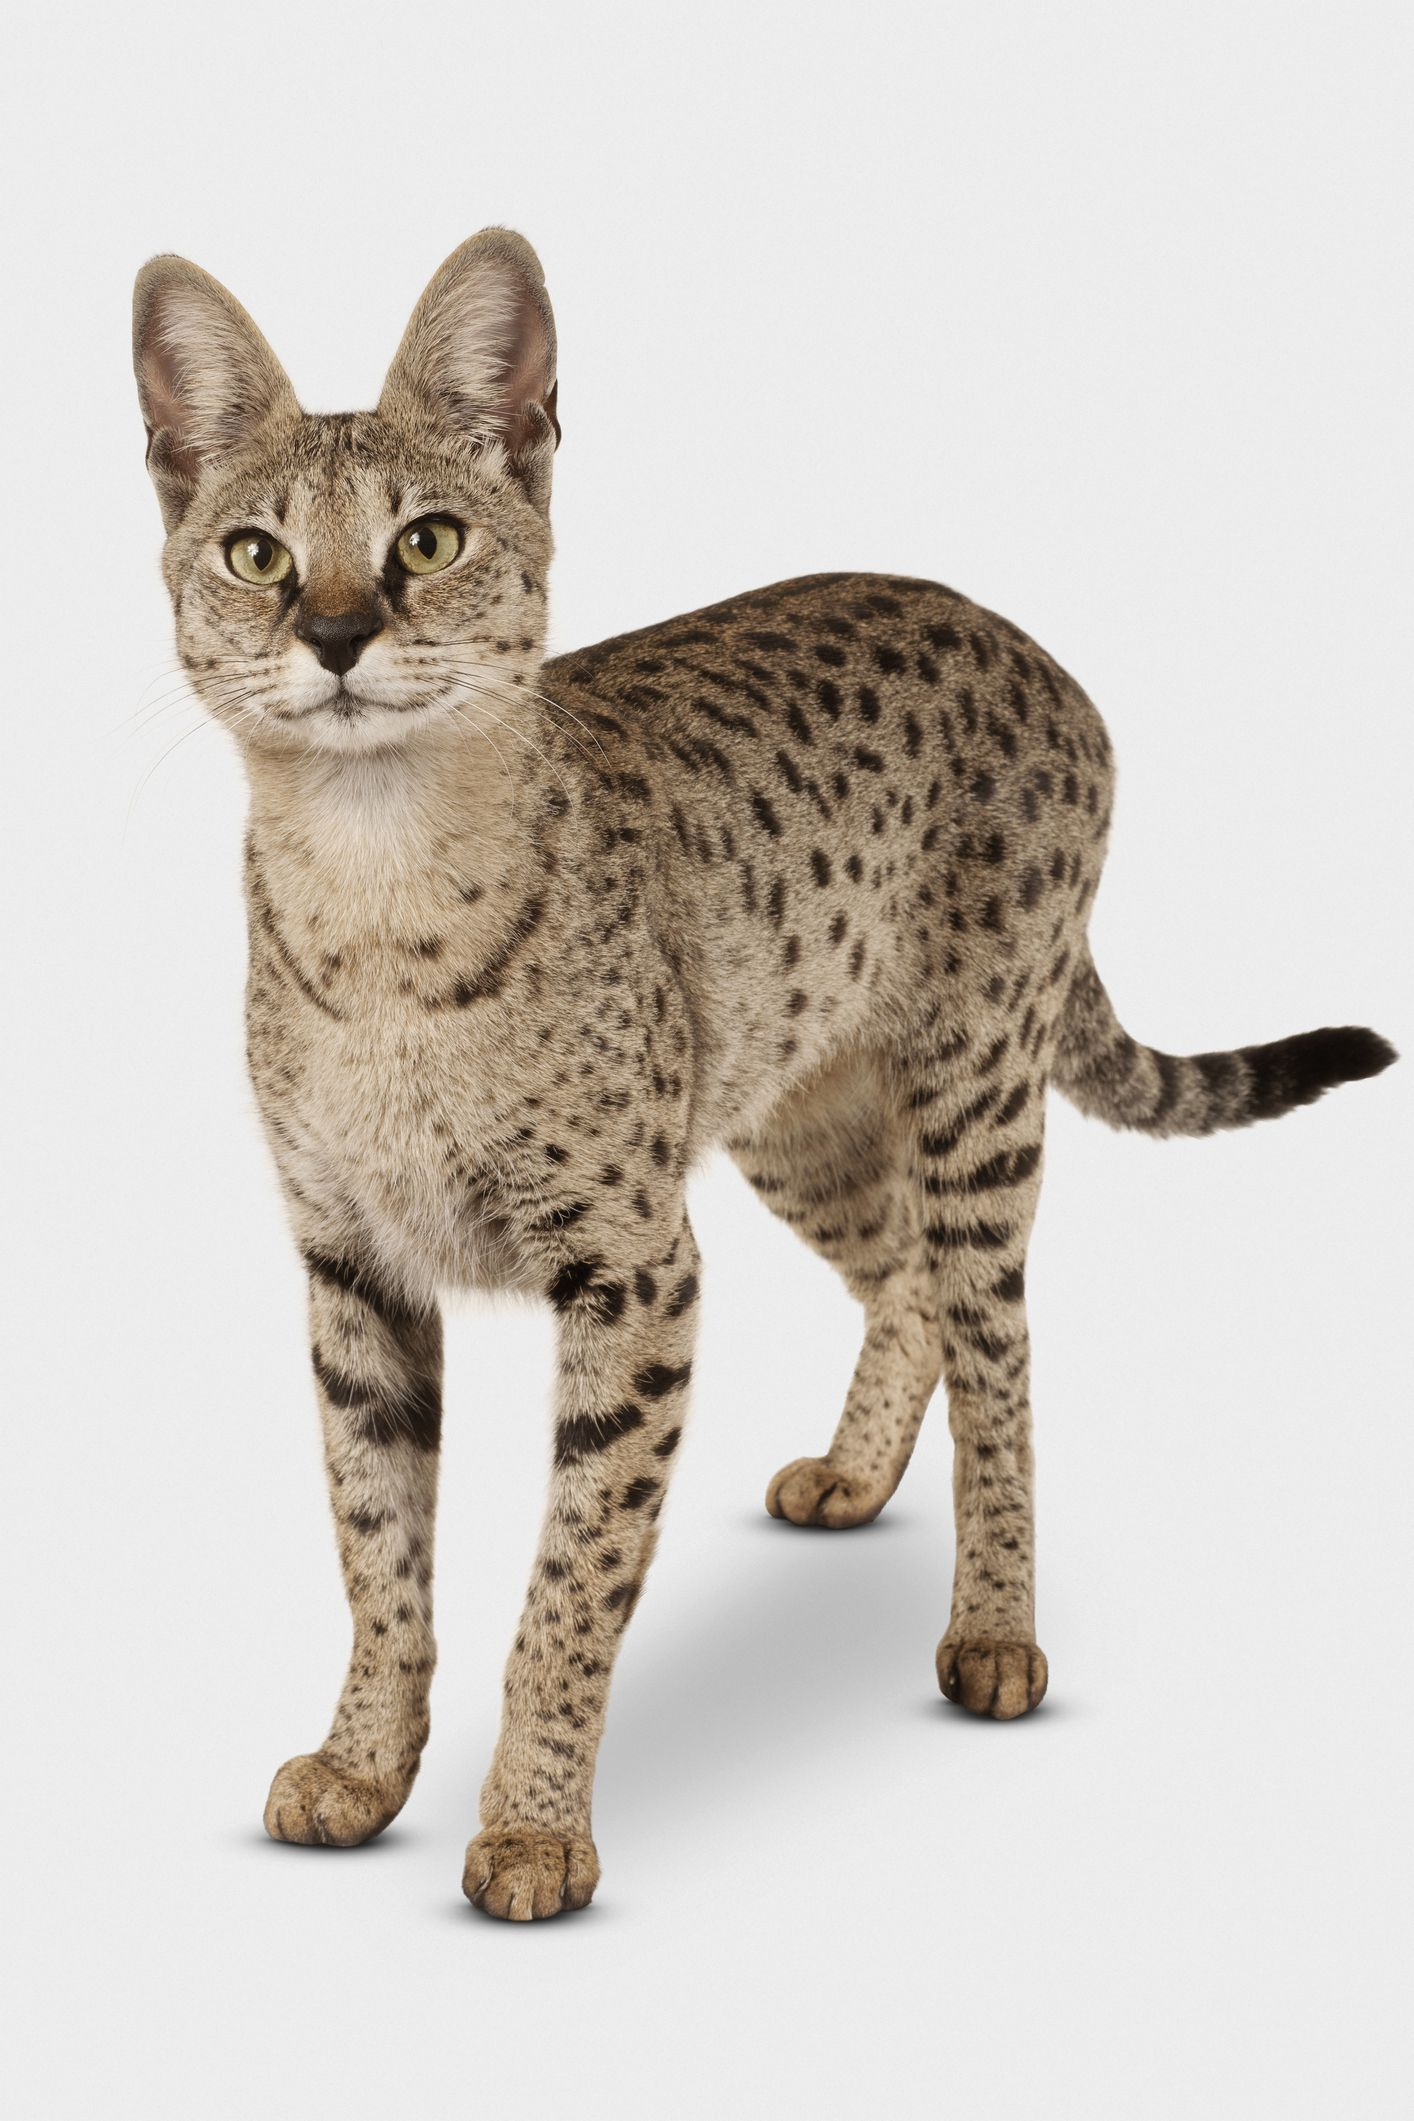 Hybrid House Cats Are Gaining In Popularity Many People May Want A House Cat That Resembles Their Wild Counterparts Or Cat Breeds Large Cat Breeds Hybrid Cat